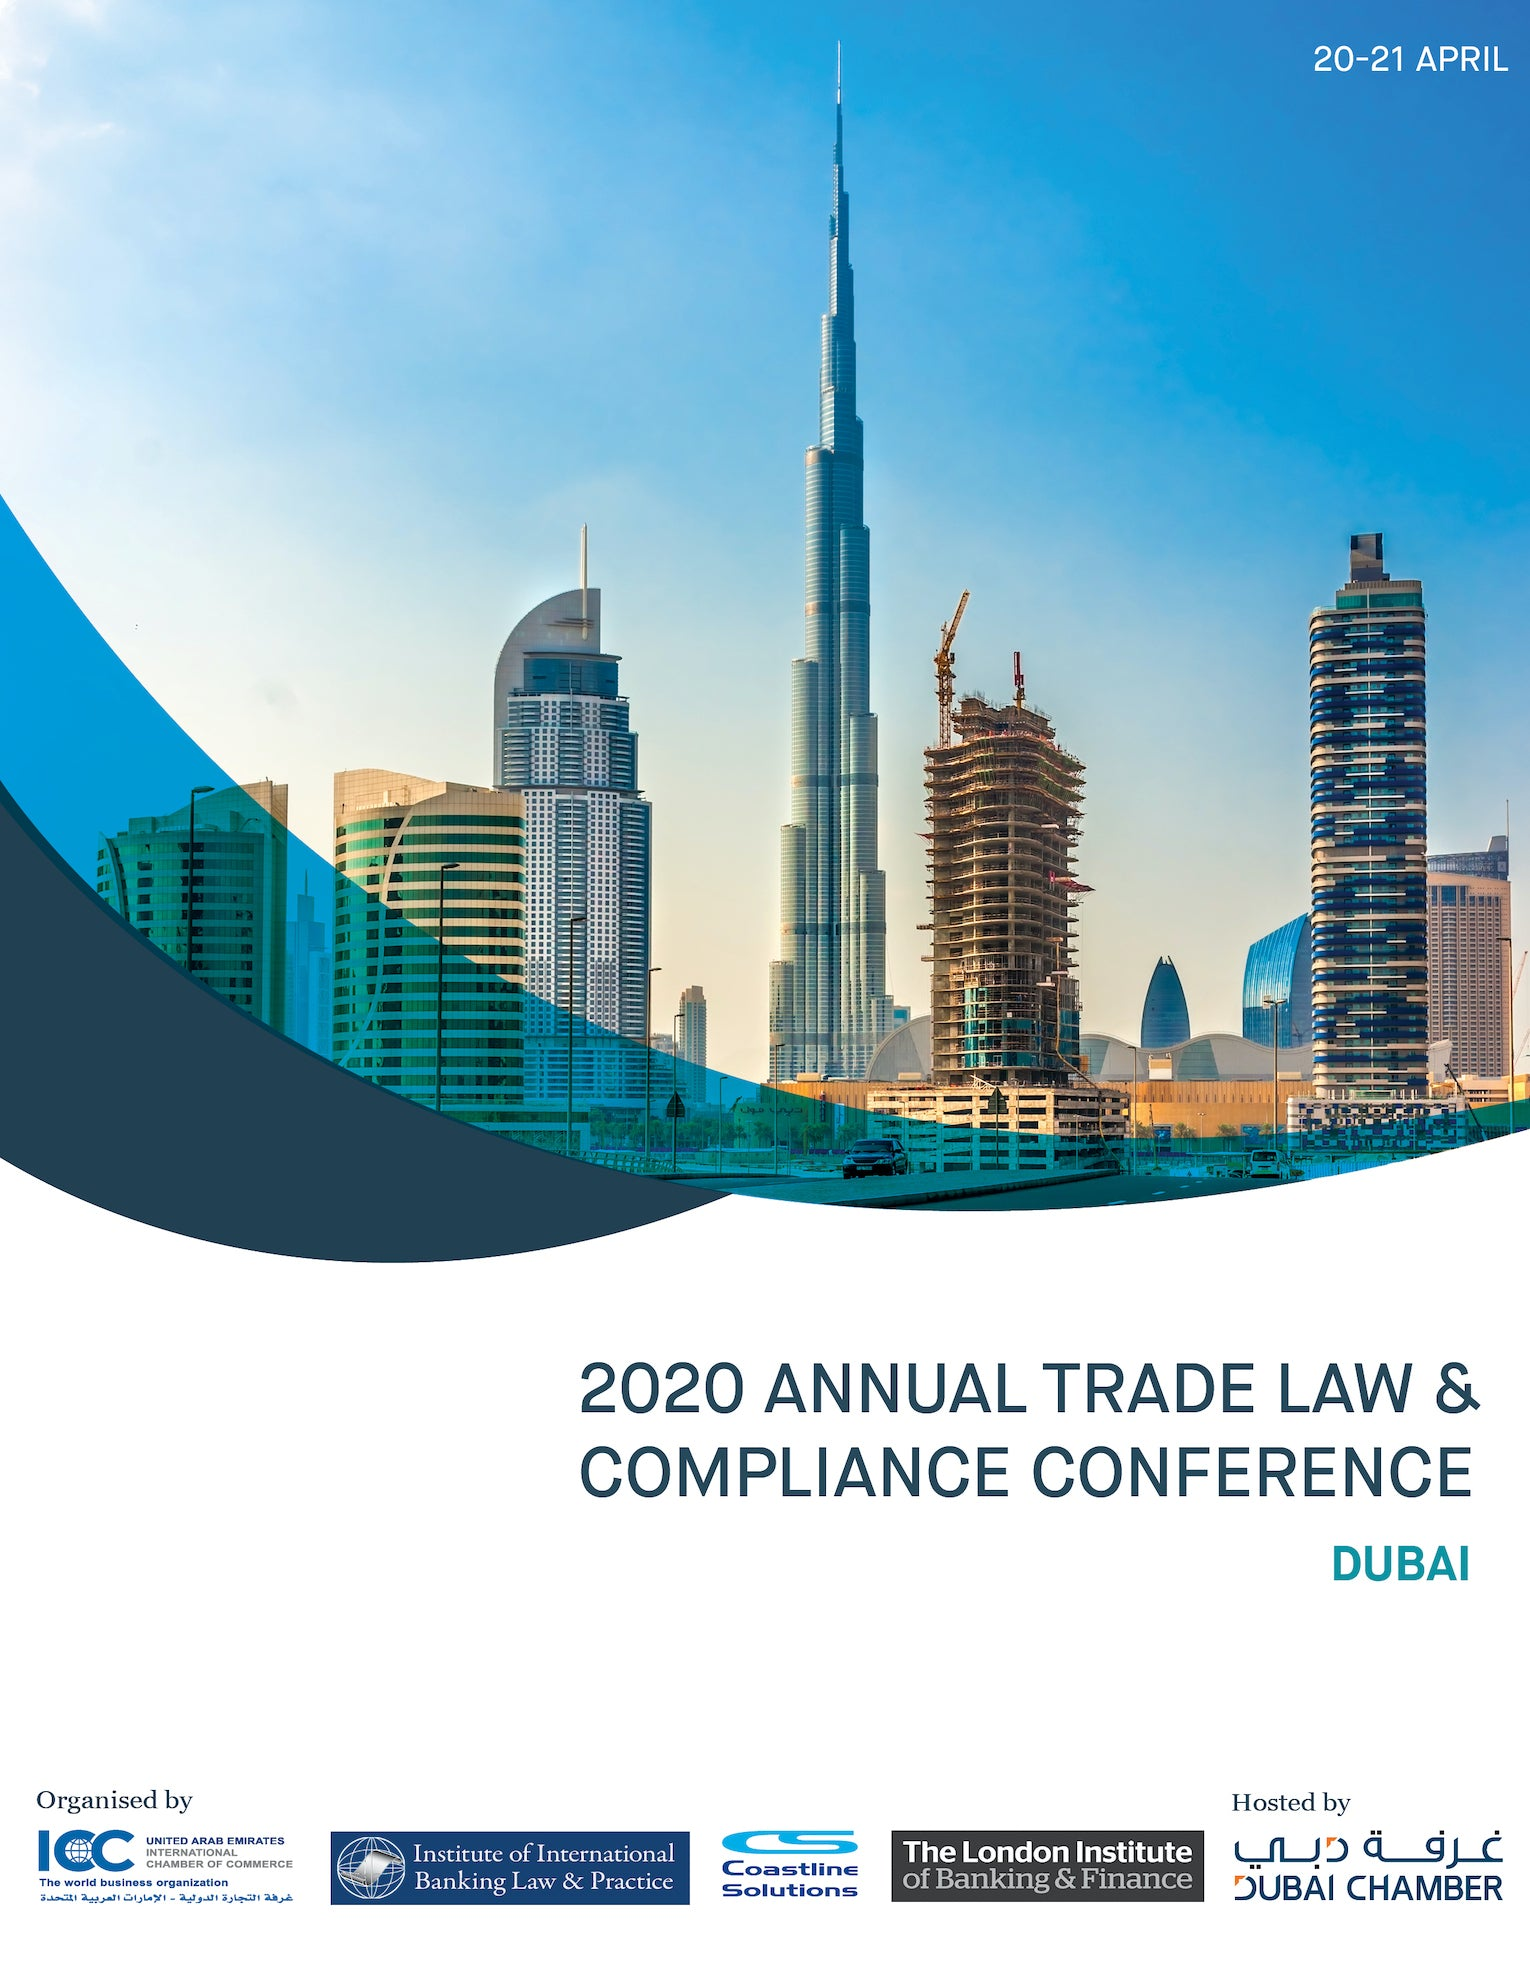 2020 Annual Trade Law & Compliance Conference - Dubai | 20-21 April